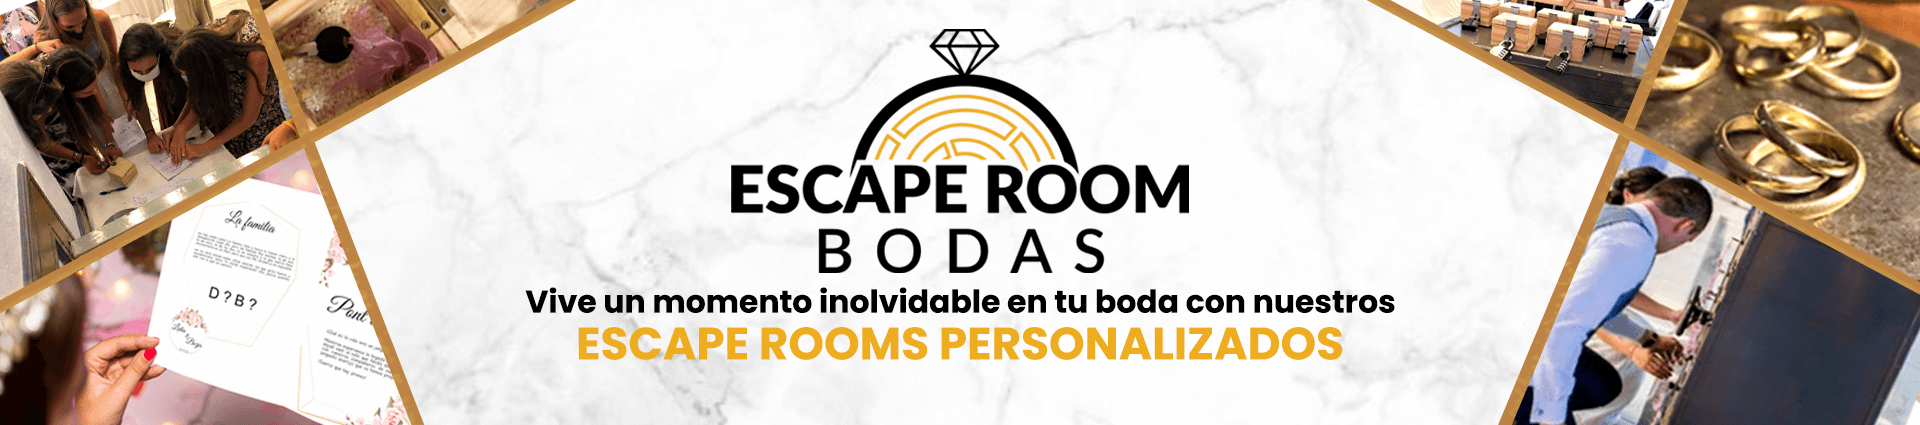 Escape Room Bodas